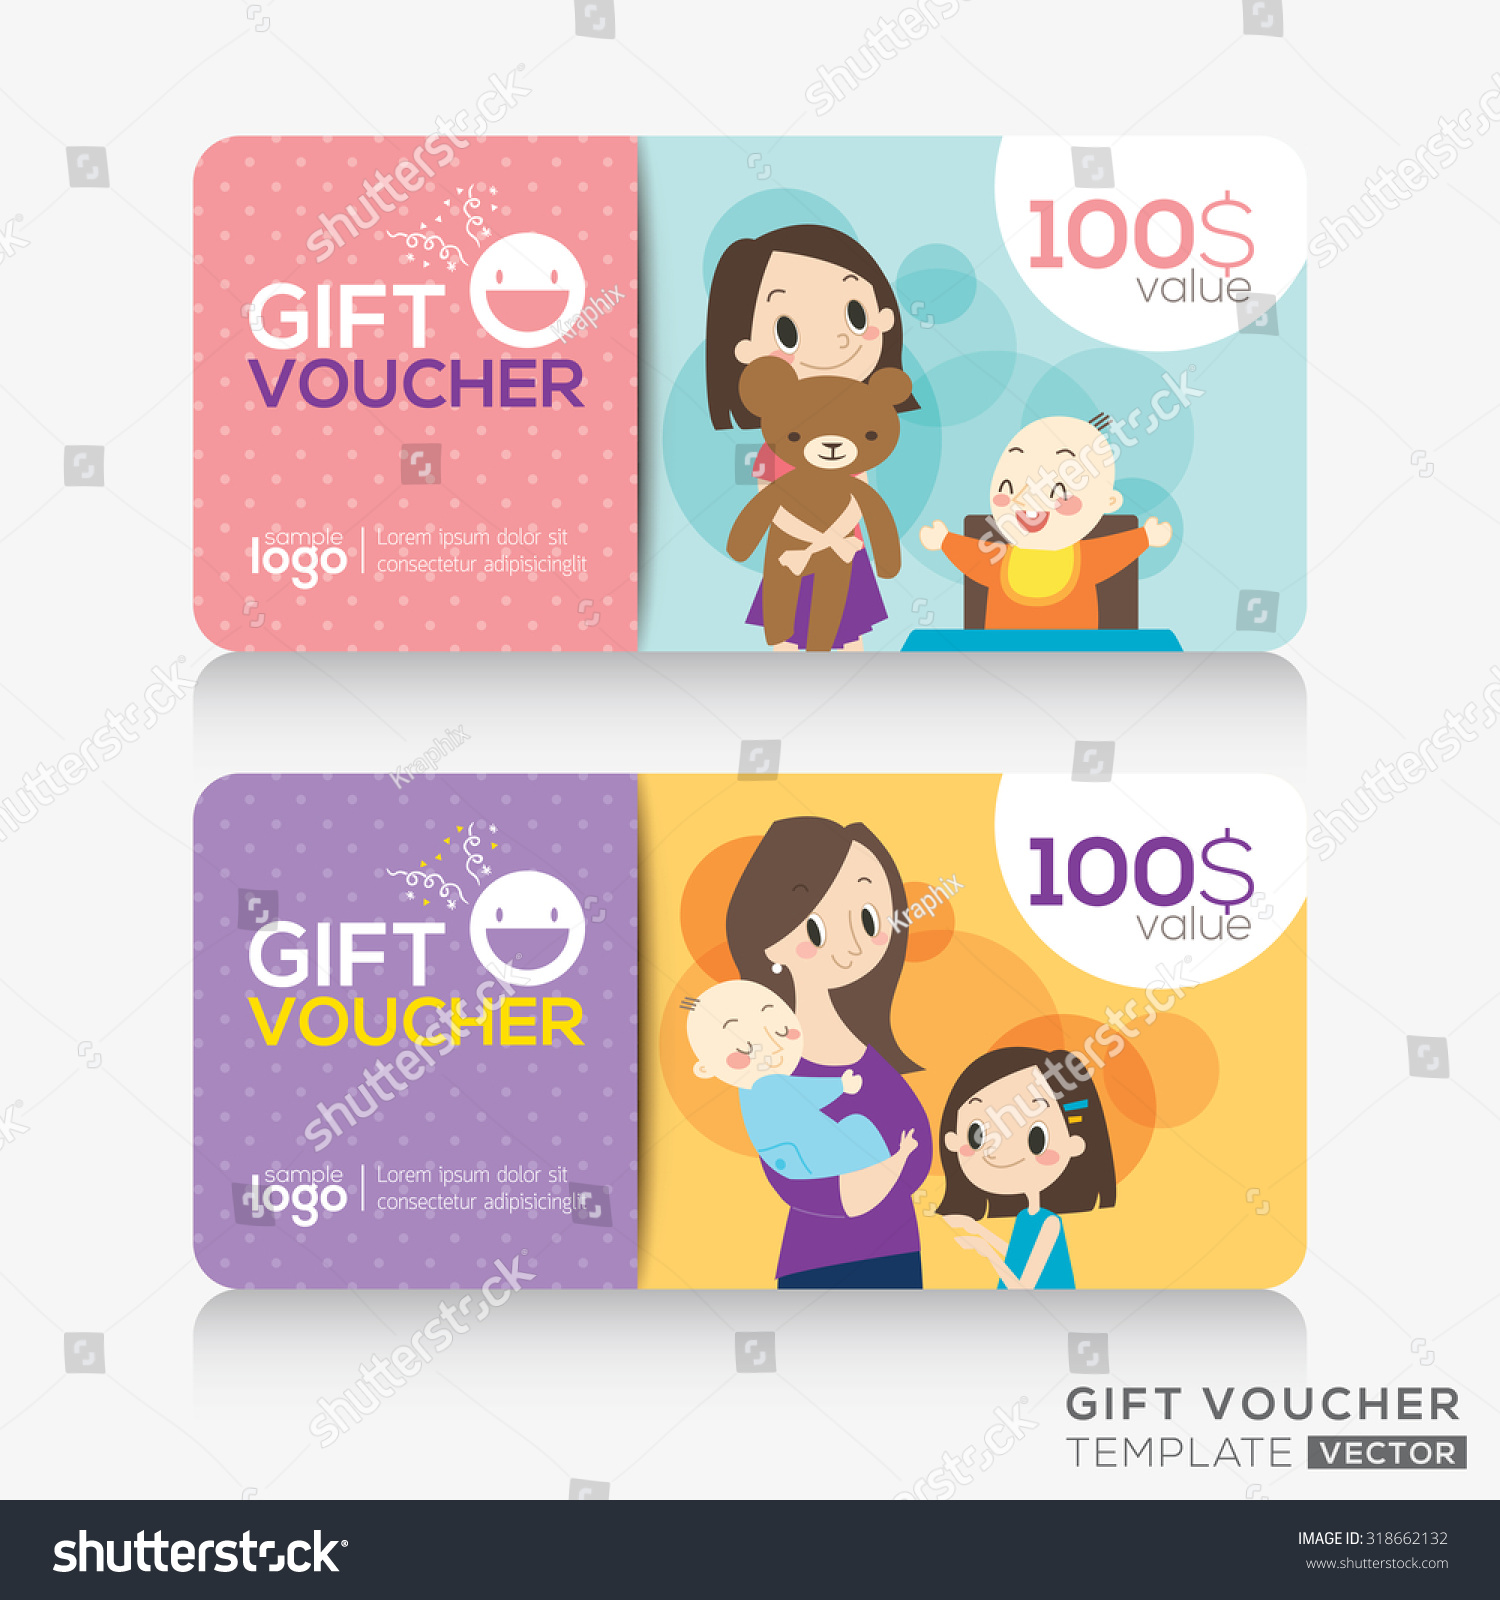 kids store coupon voucher gift card stock vector  kids store coupon voucher or gift card design template illustration of cute mother and children